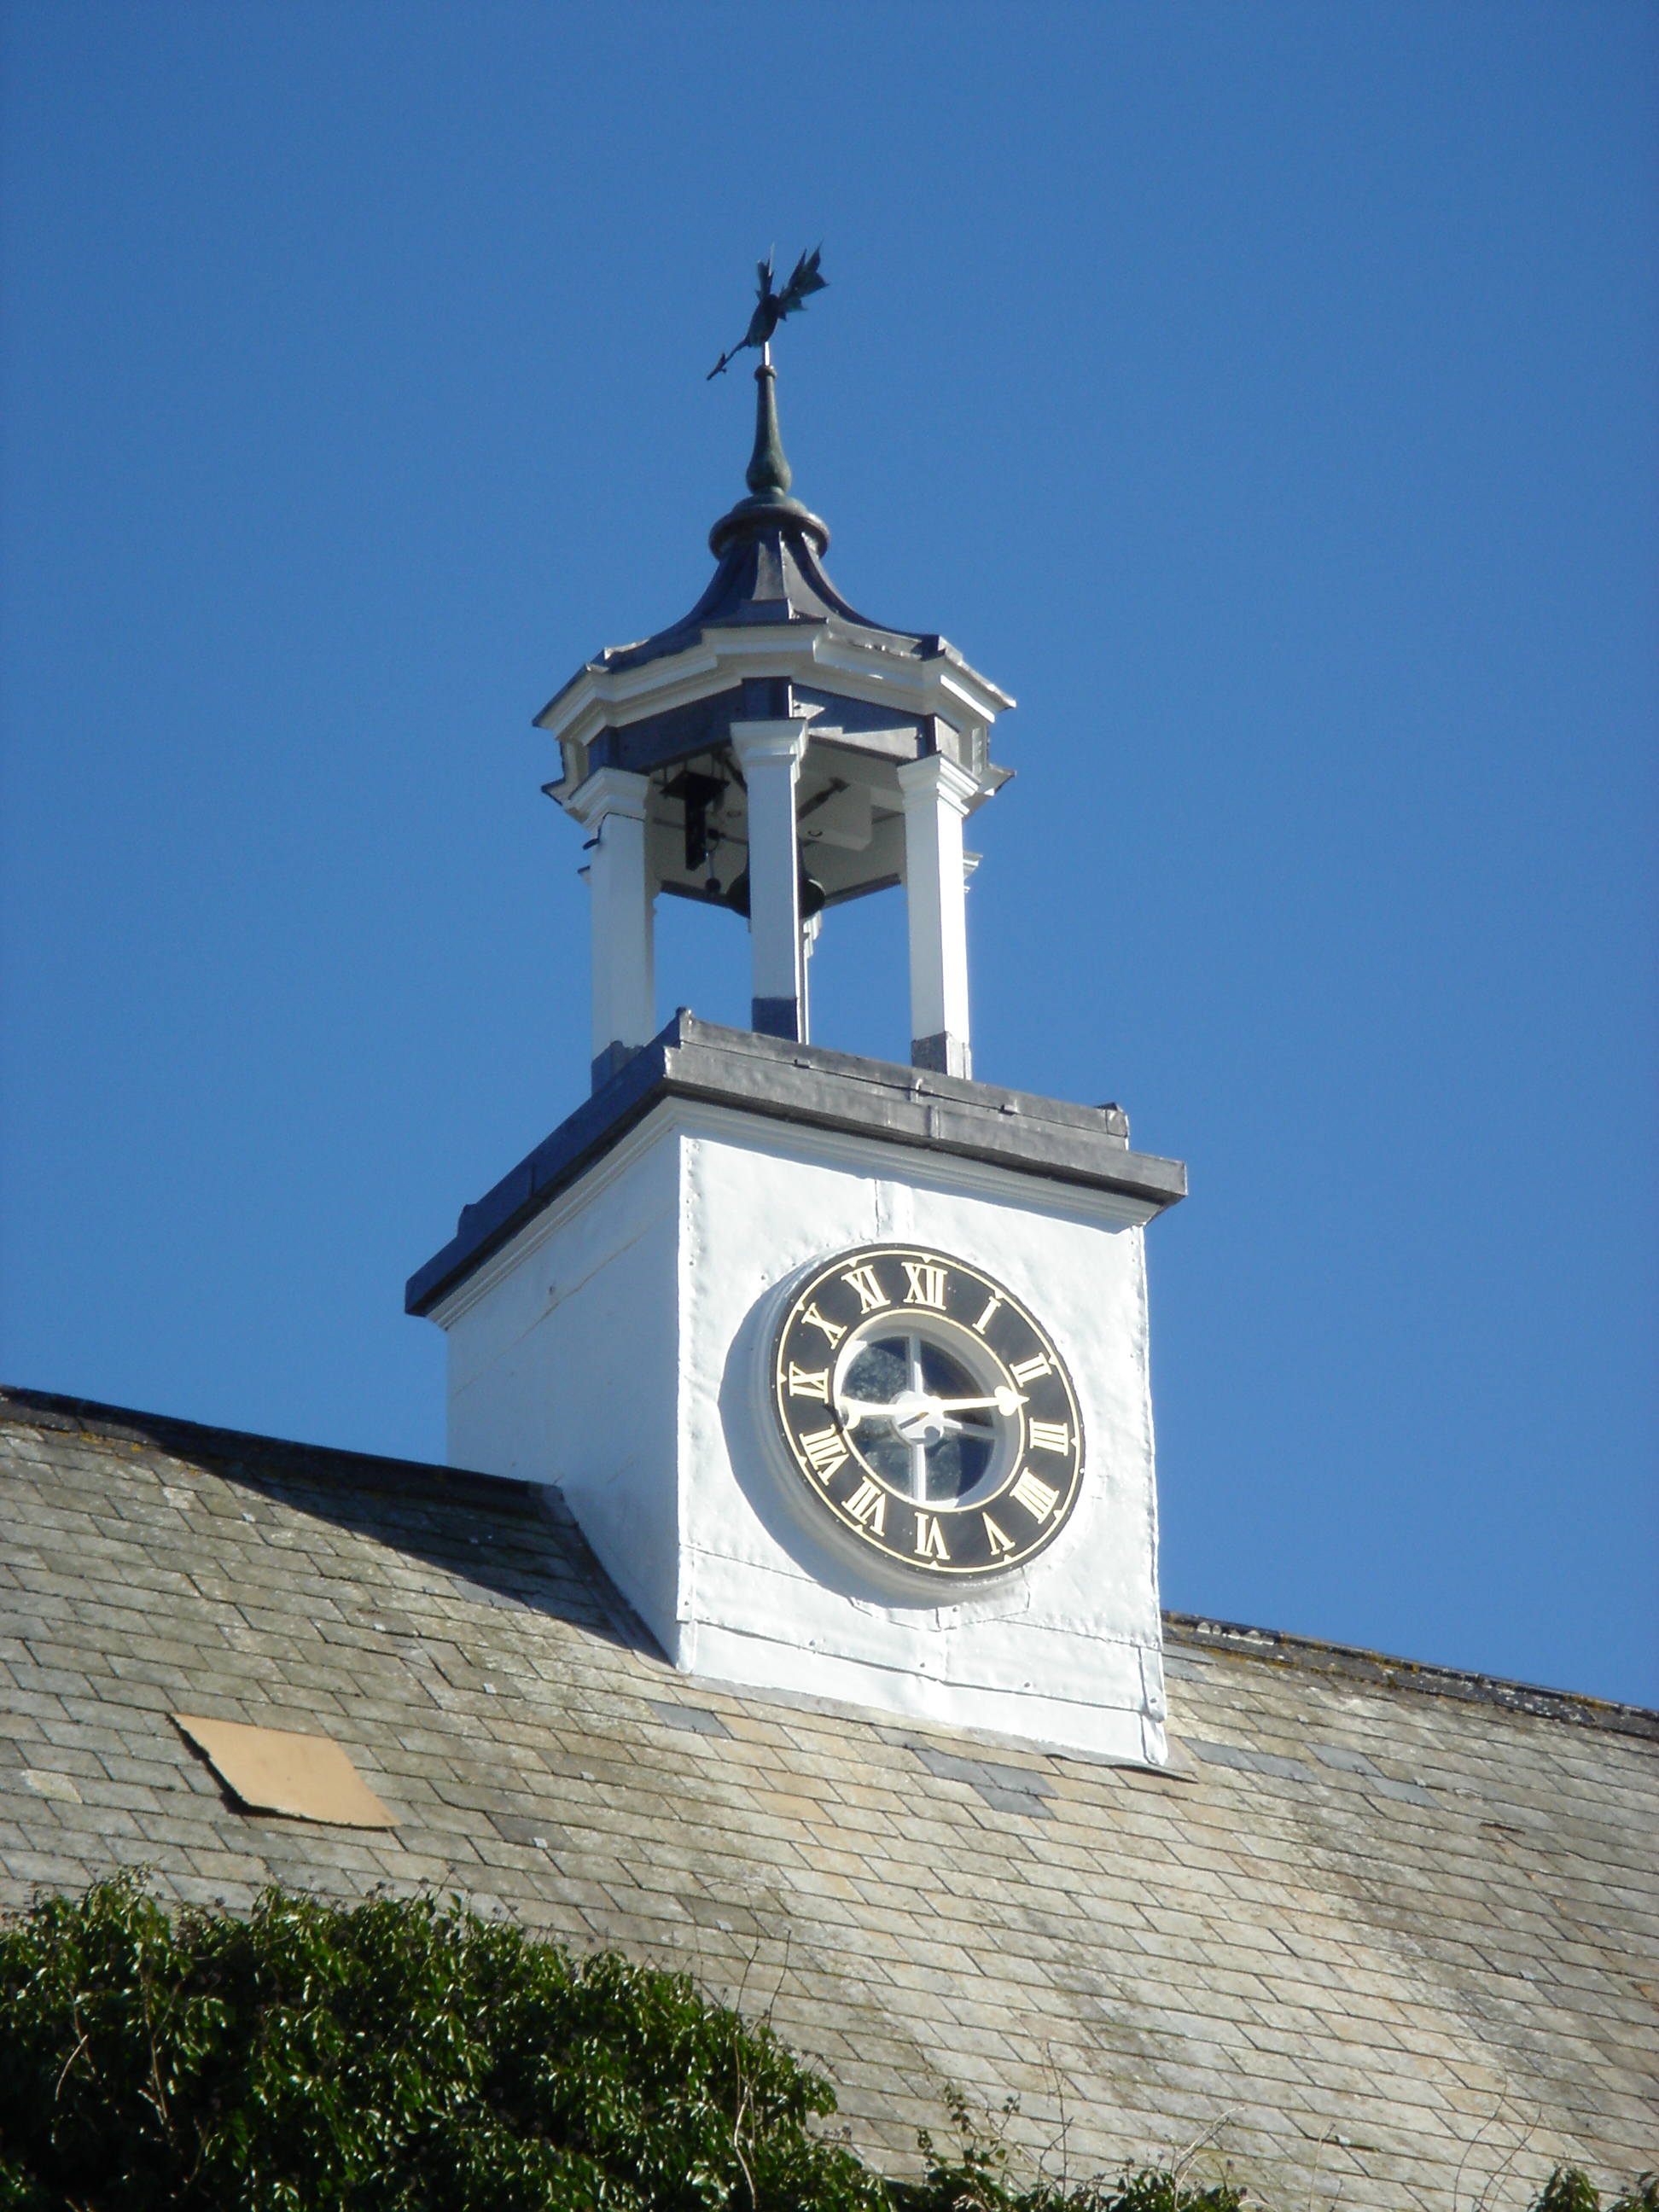 Restored clock in tower